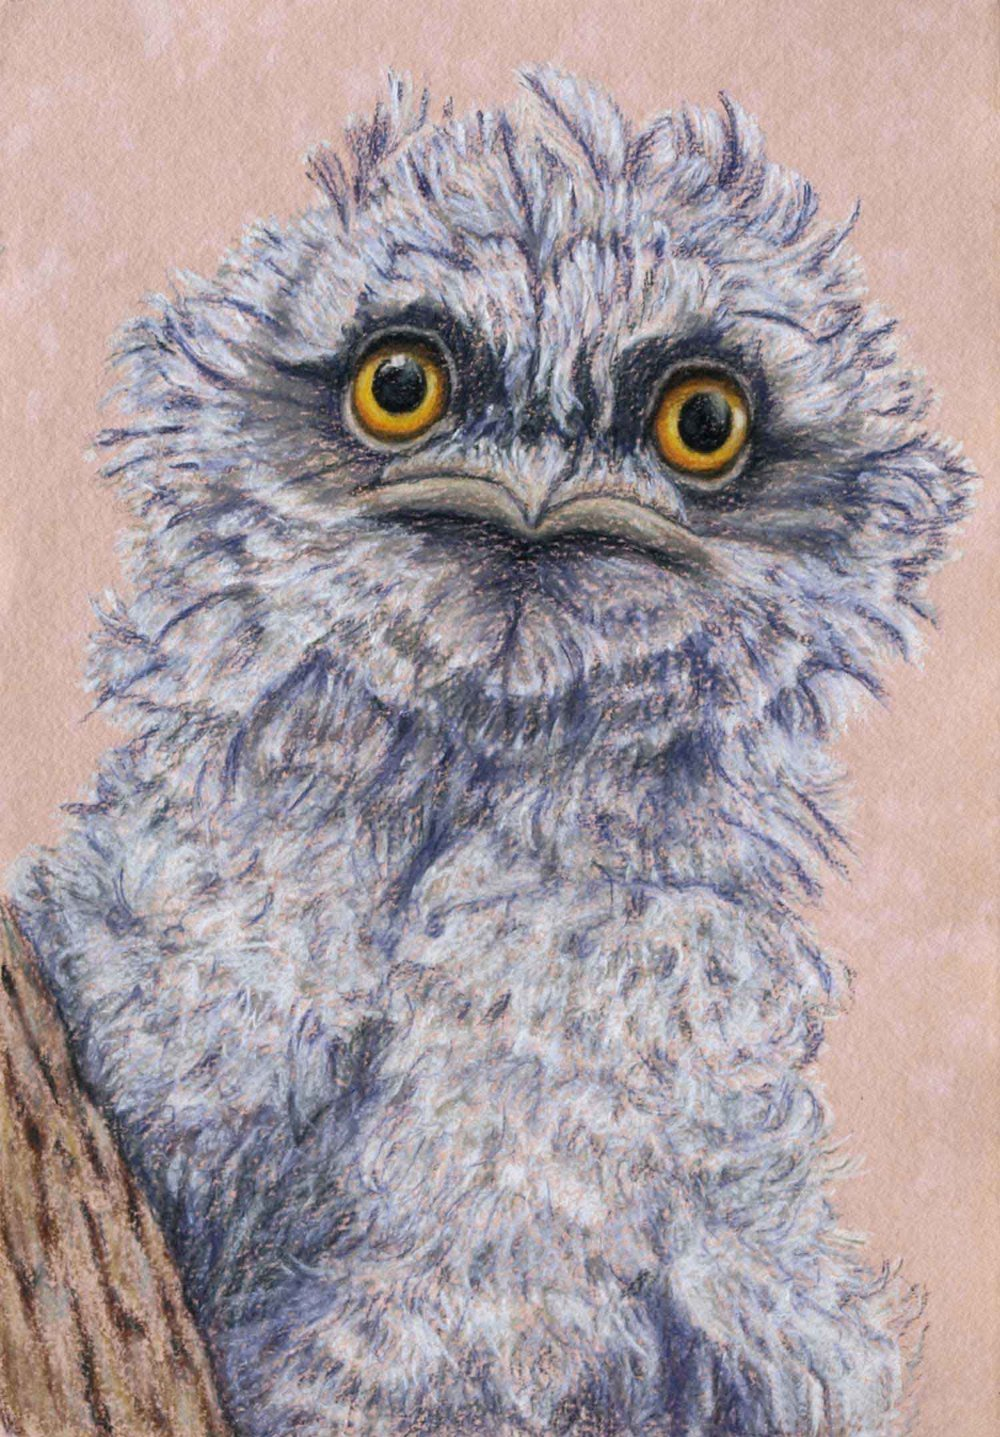 Tawny Frogmouth chick  37 x 26 cm, Pastel Drawing on handmade paper  Available as a limited edition print  $650